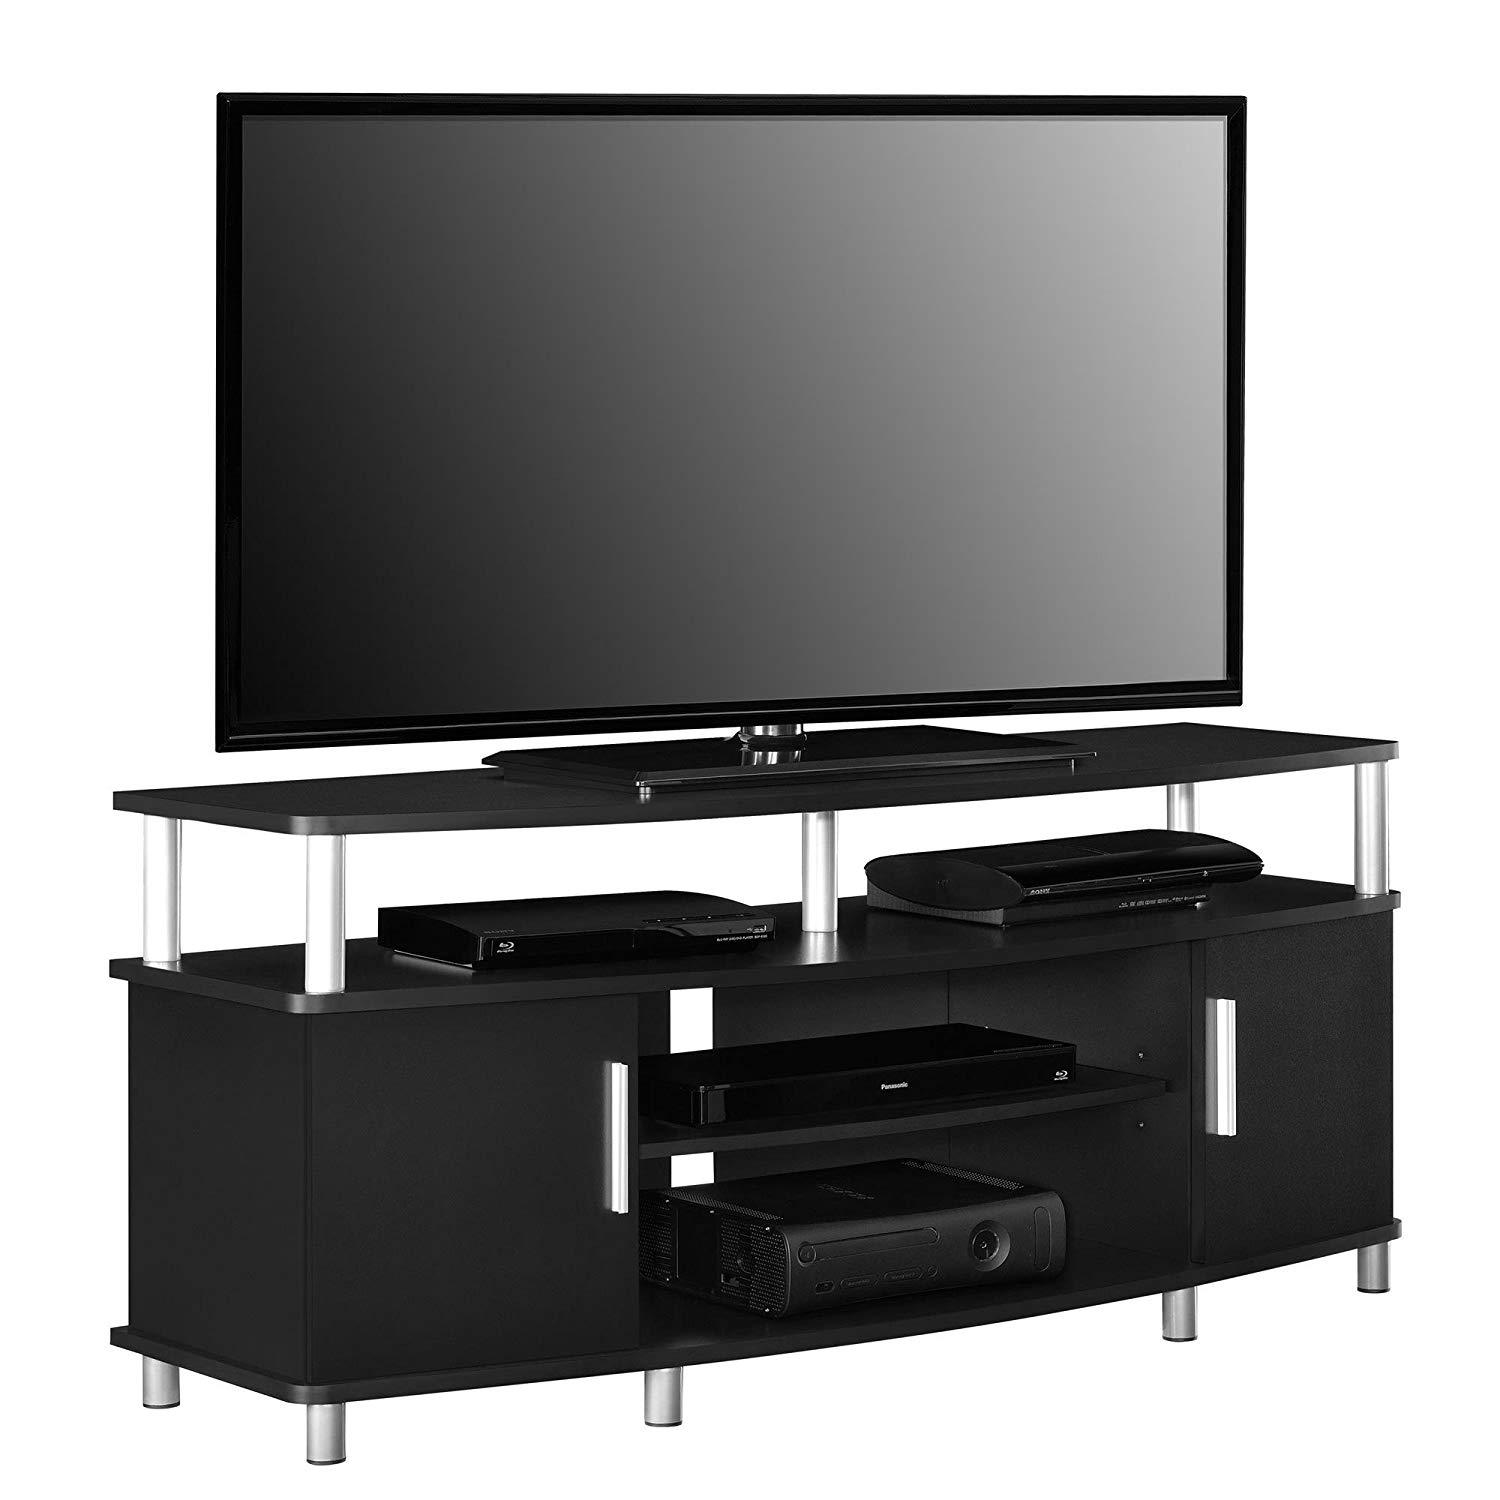 Ameriwood Home Carson TV Stand for $45.13 Shipped